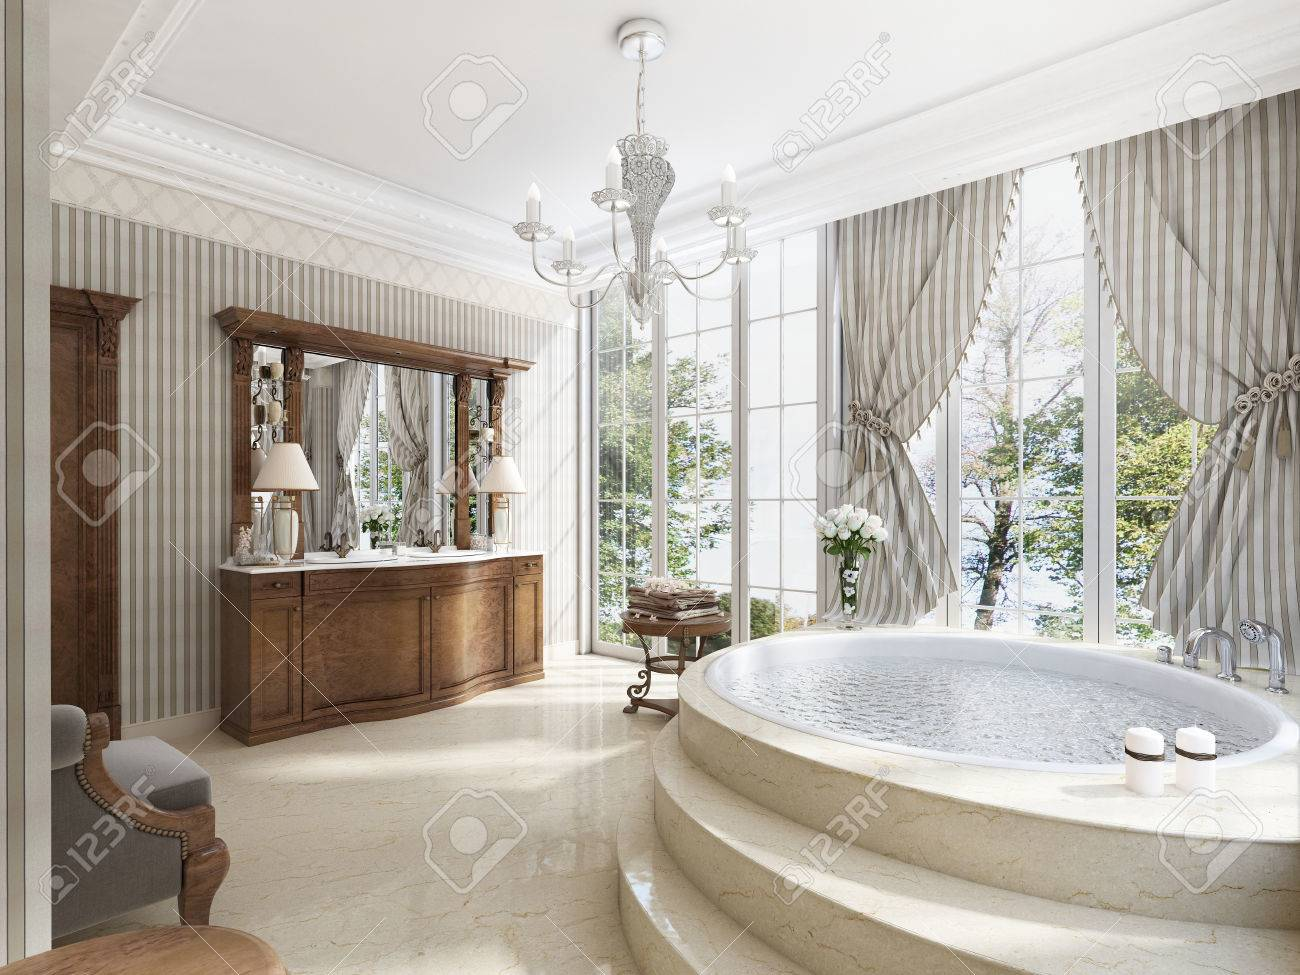 Bathroom In Luxury Neo-classical Style With Sinks Tubs And A.. Stock ...